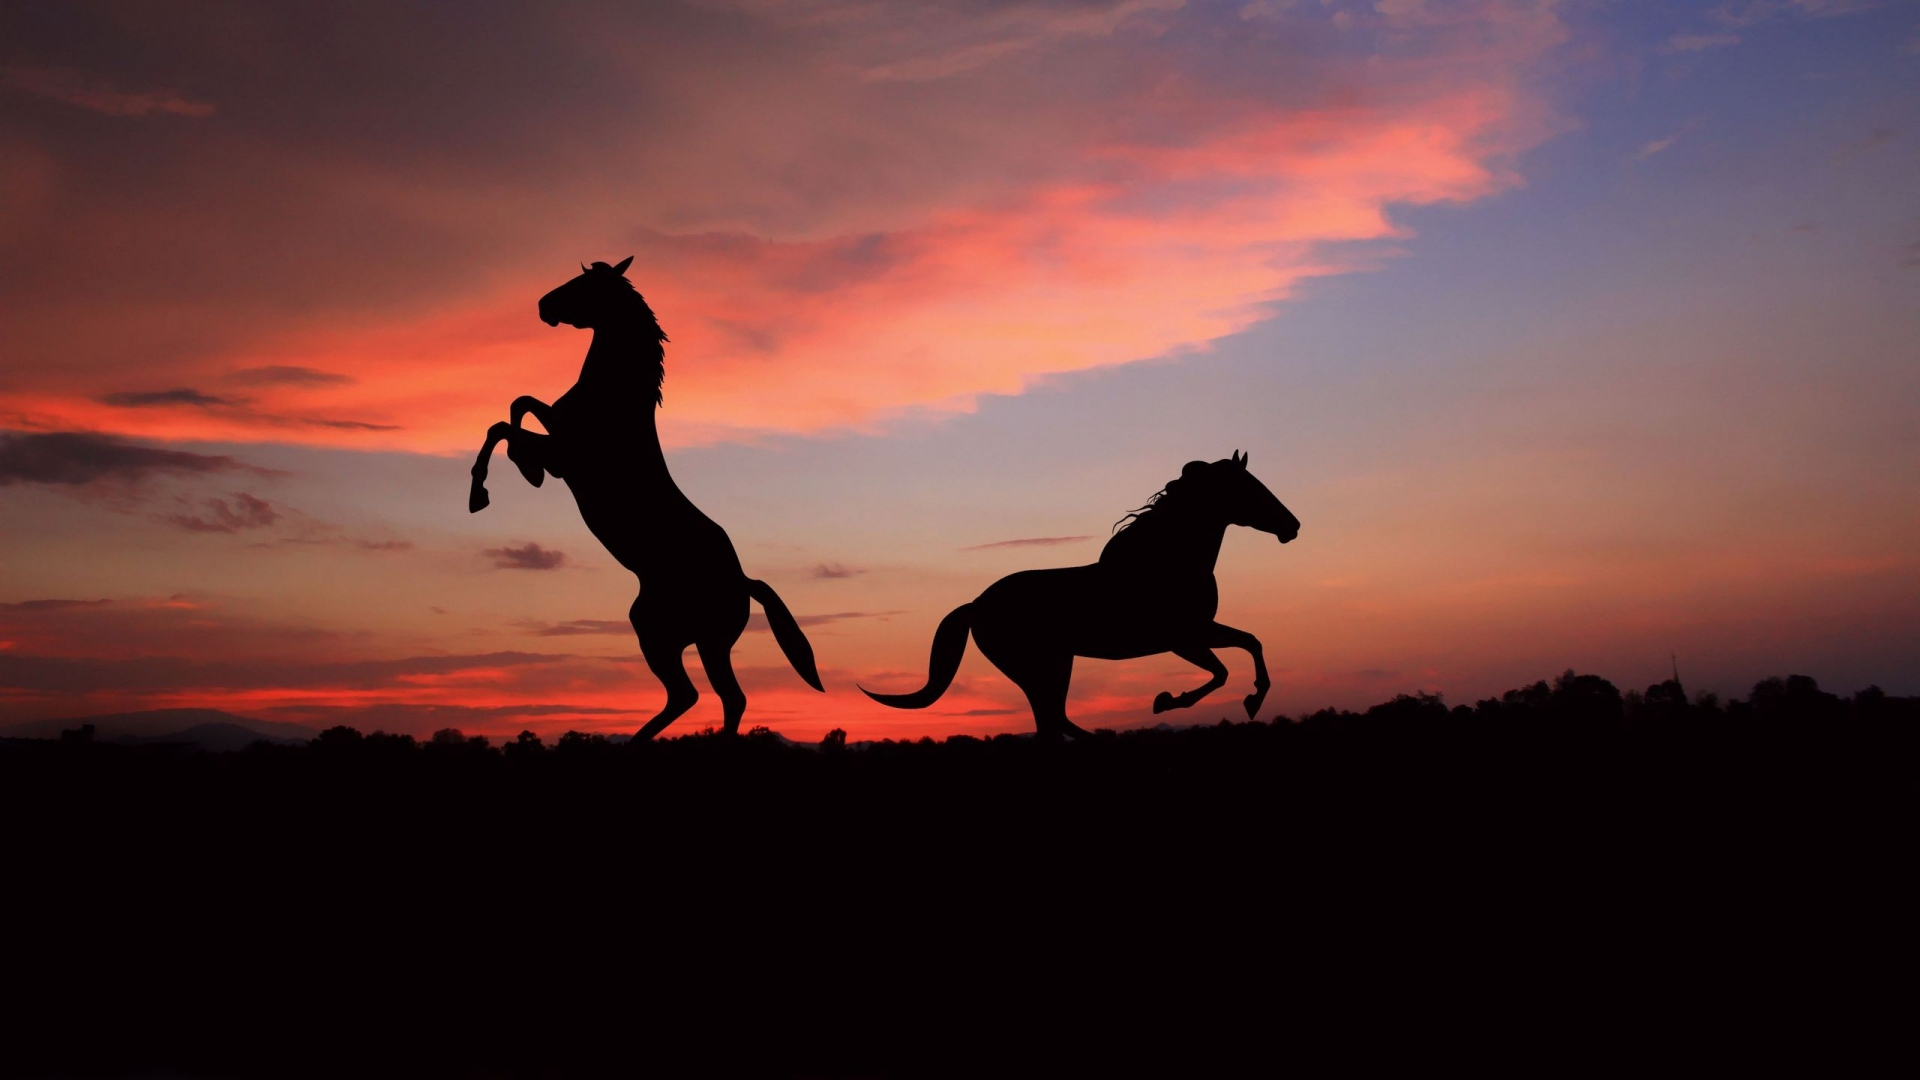 Download Wallpaper 1920x1080 Horse Sunset Jumping Sky Full Hd 1080p Hd Background